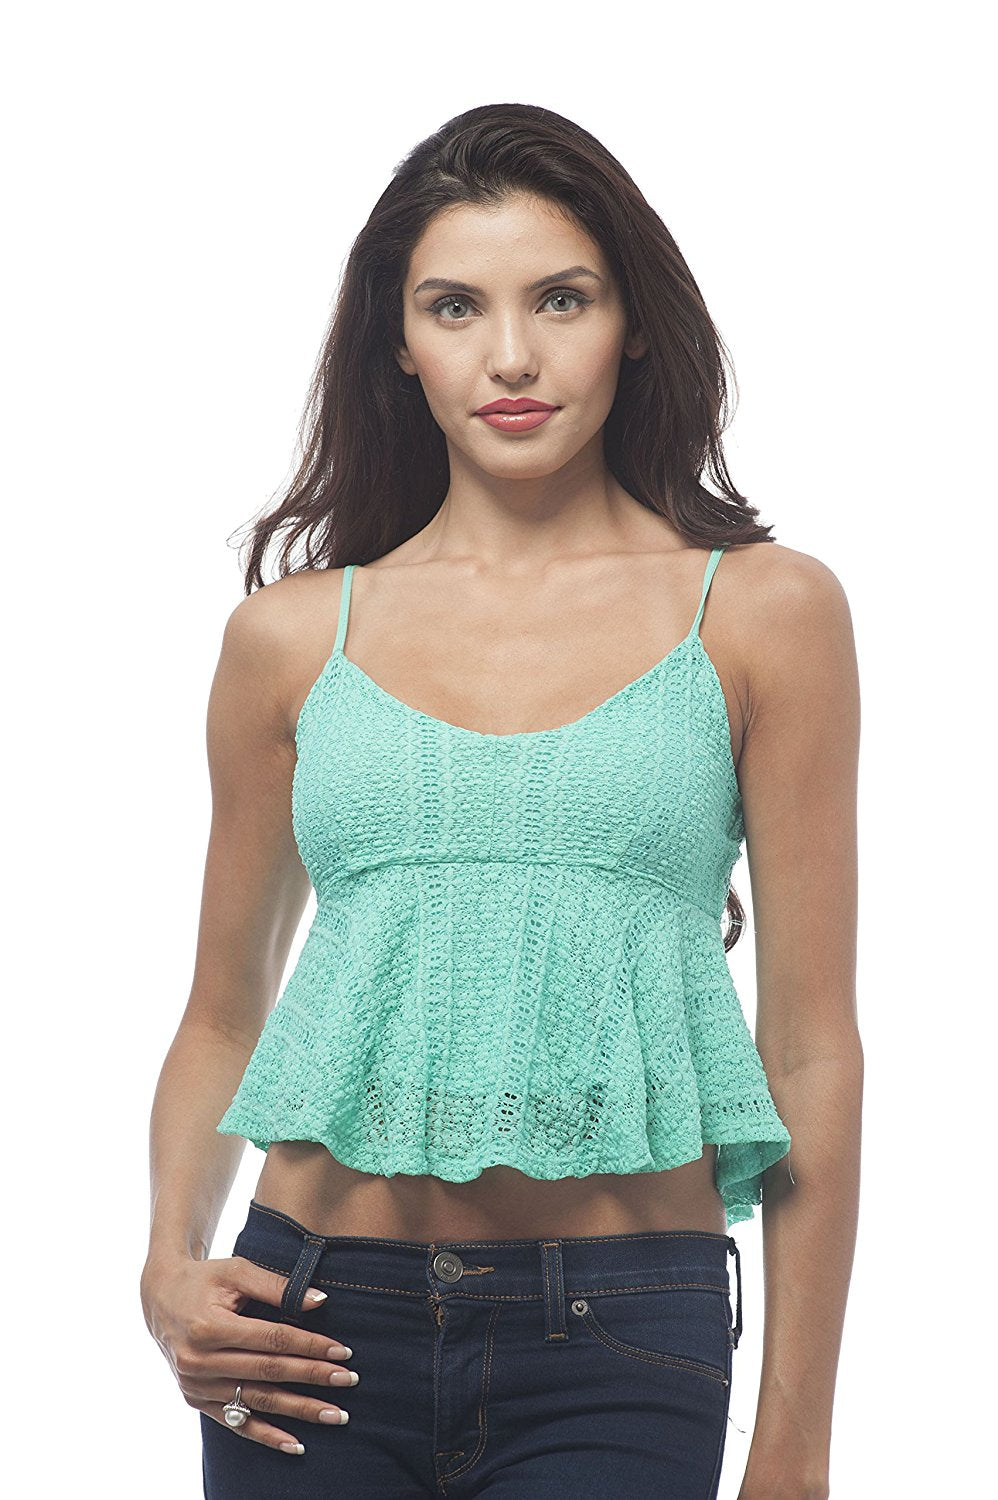 Hollywood Star Fashion Baby Doll cami Crop Top with adjustable straps